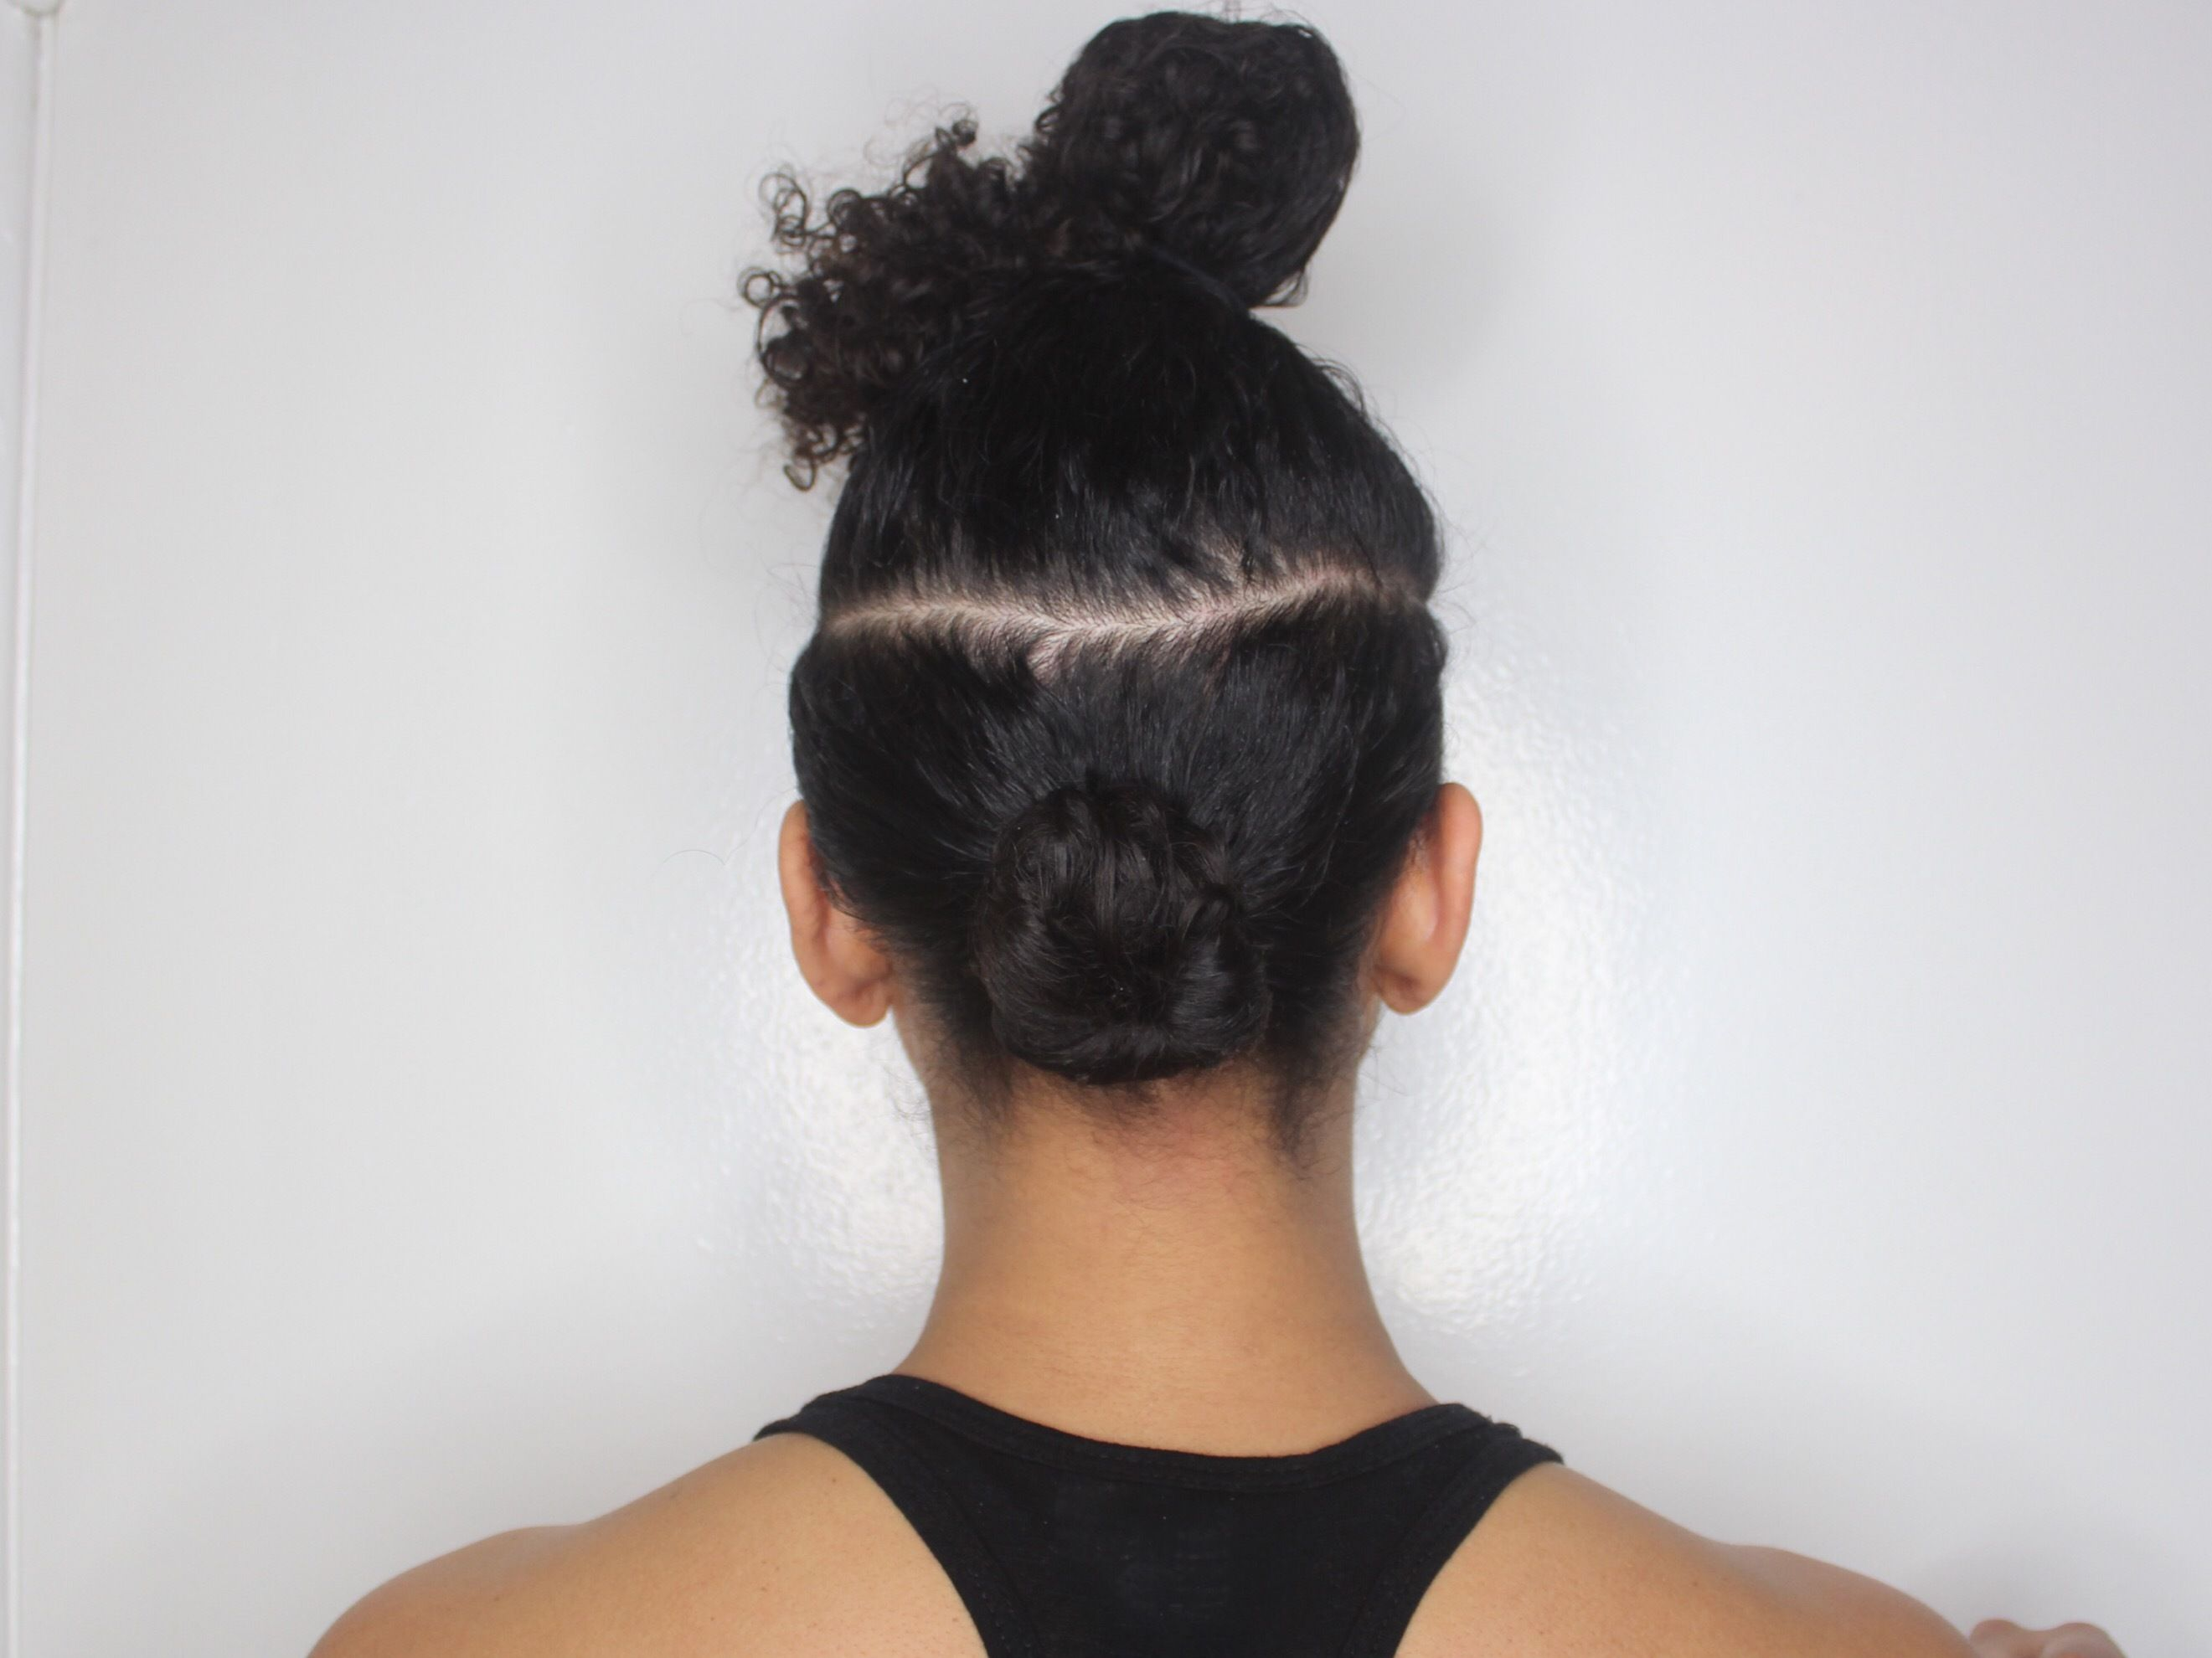 twisted bun on bottom section of hair